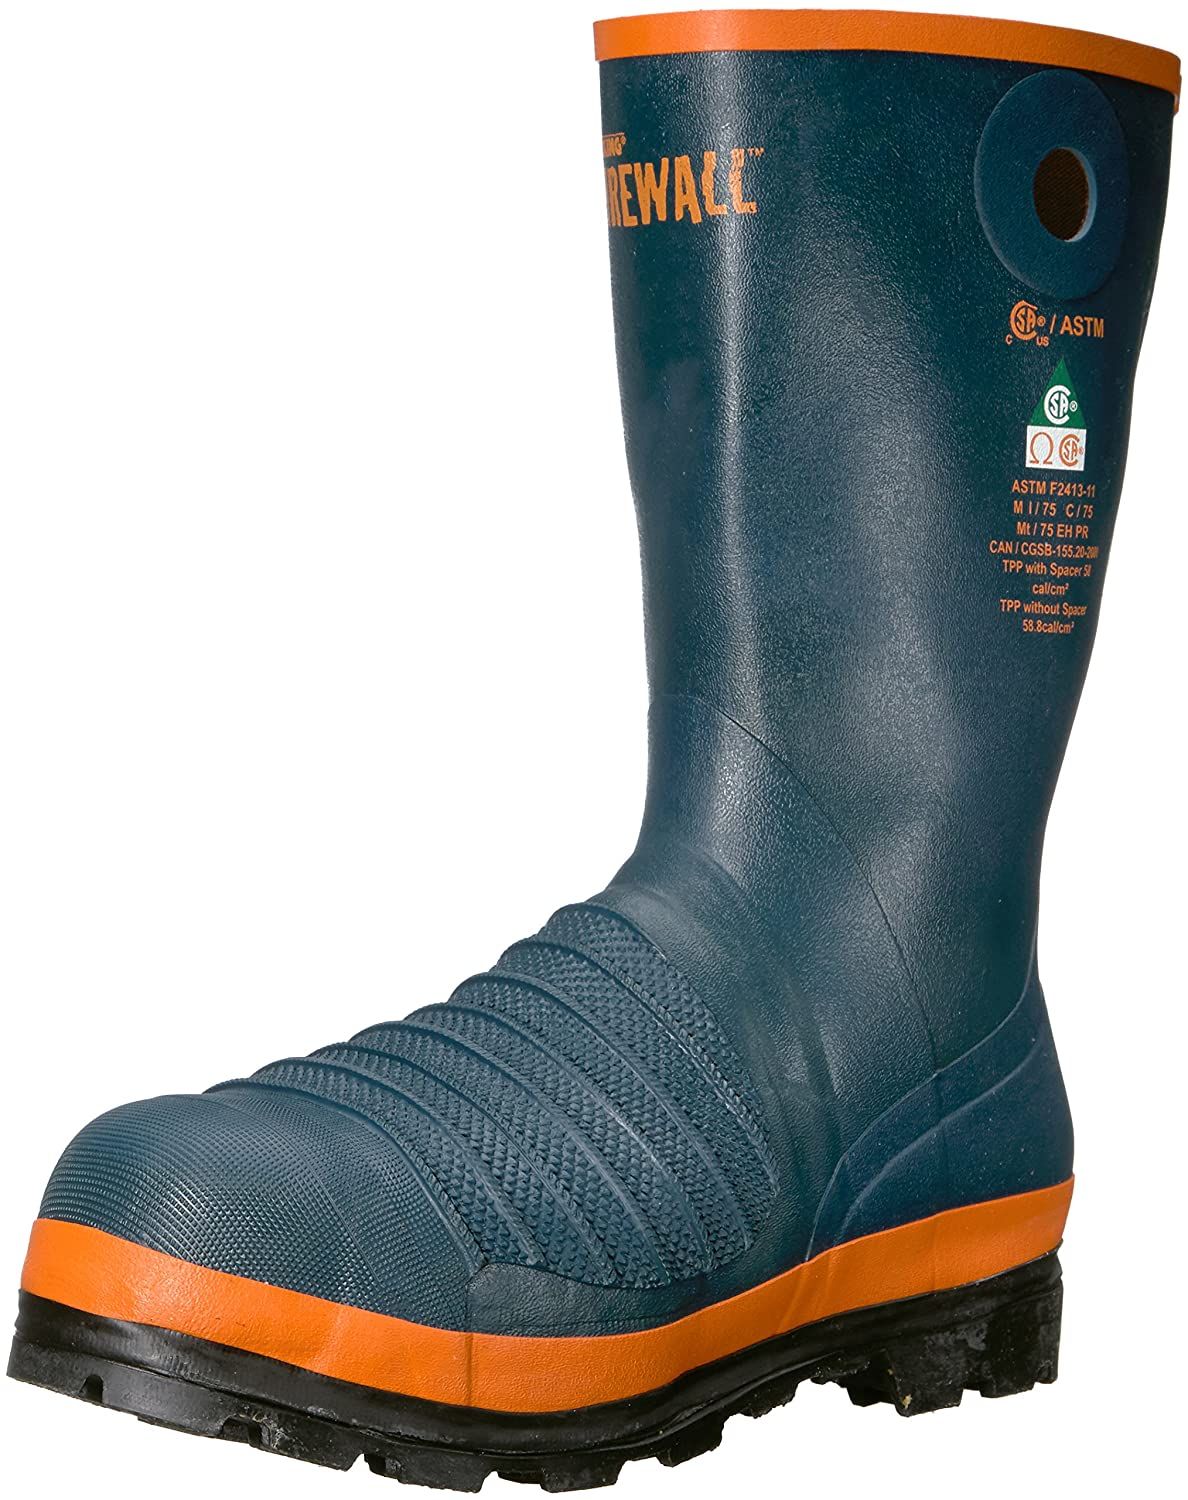 Men Steel Toe and Plate Fire and Safety Viking Footwear Mens Viking  Firewall Rigger Boot Clothing, Shoes & Jewelry samel.com.br